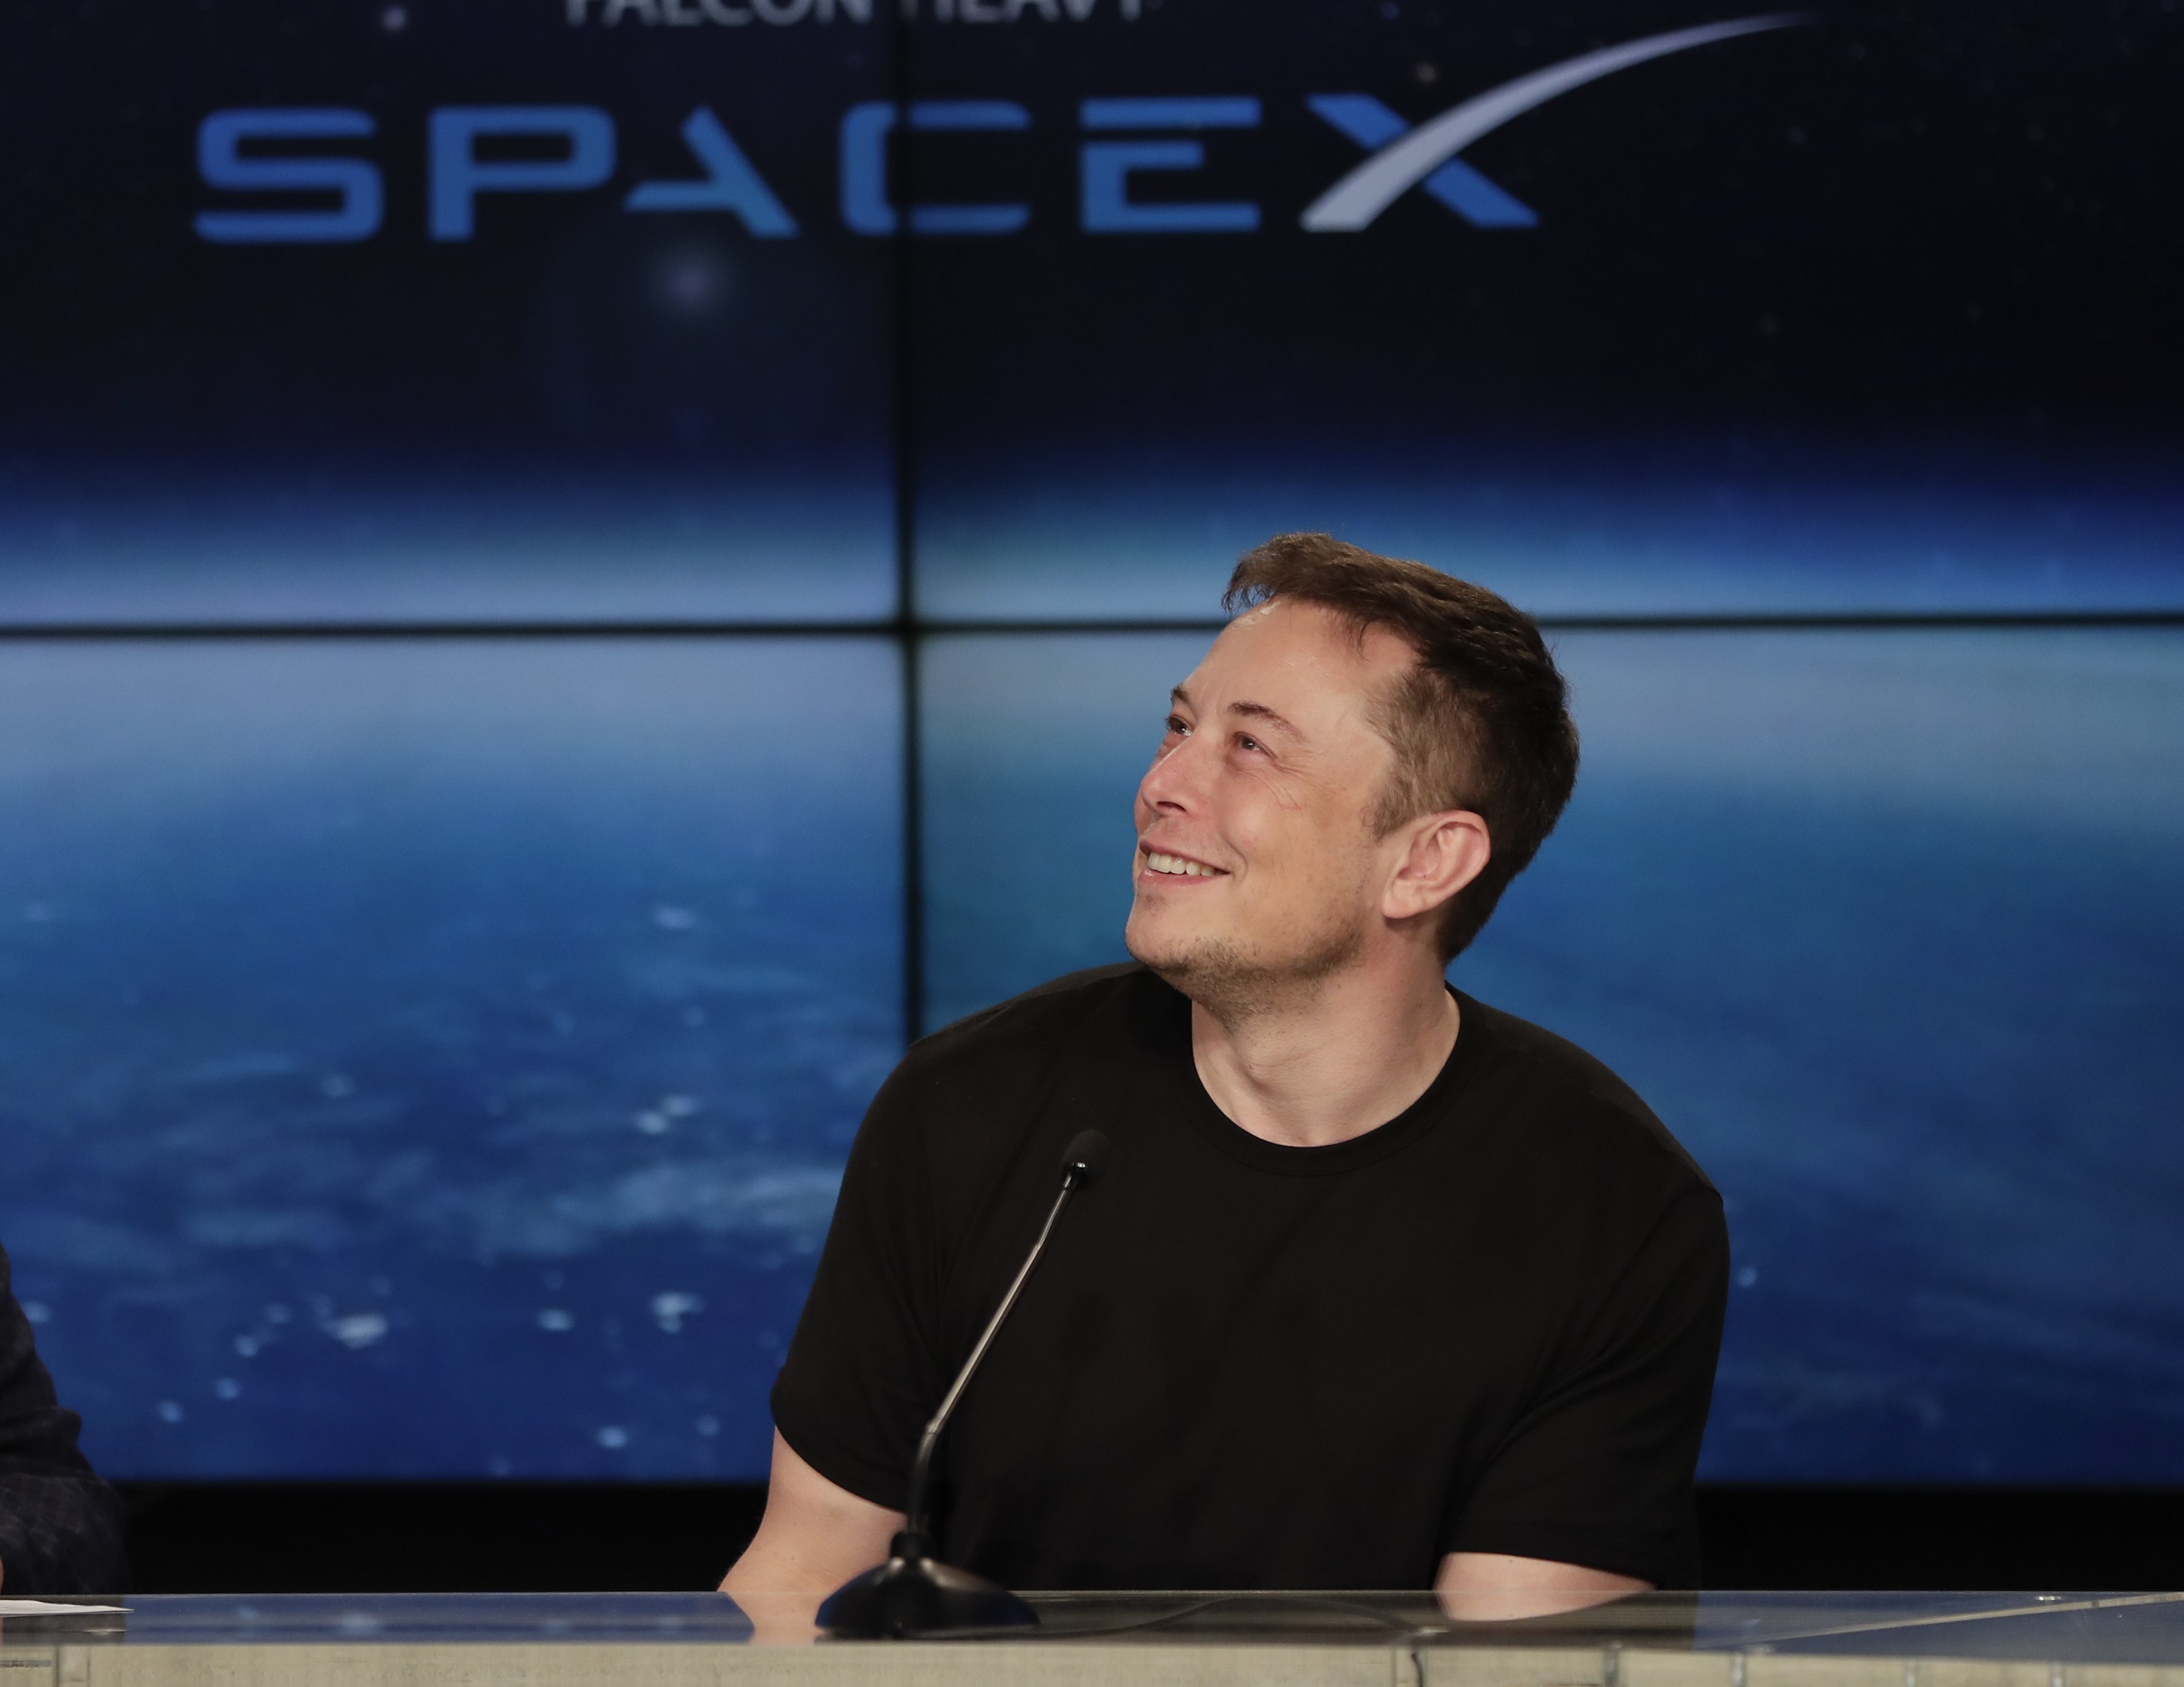 Elon Musk, founder, CEO, and lead designer of SpaceX, speaks at a news conference after the Falcon 9 SpaceX heavy rocket launched successfully from the Kennedy Space Center in Cape Canaveral, Florida, Feb. 6, 2018.